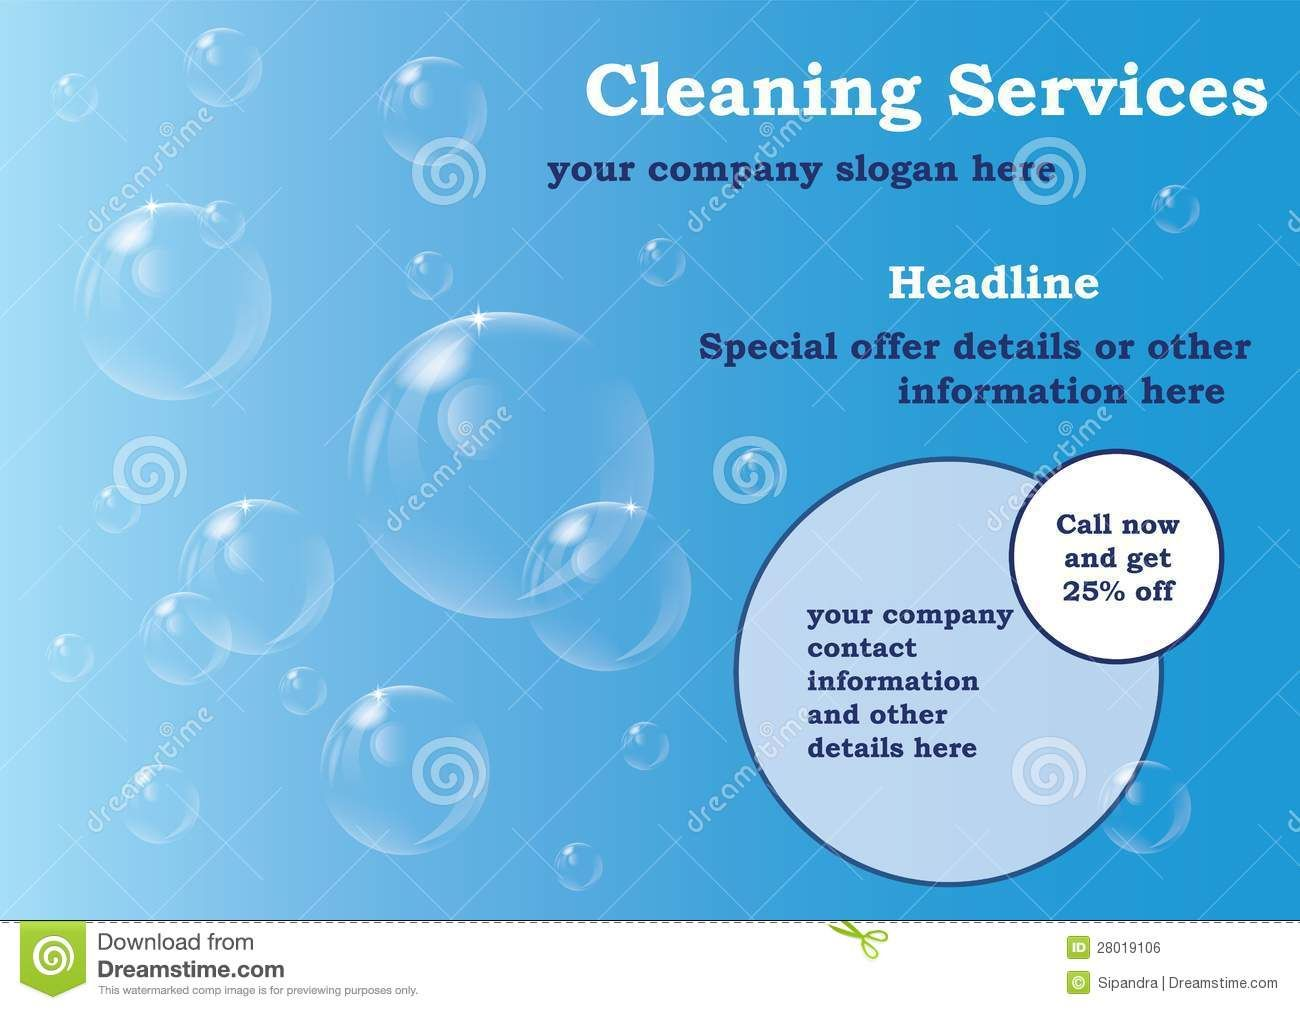 Image Result For Cleaning Services Flyers Templates Free Flyers - Cleaning brochure templates free